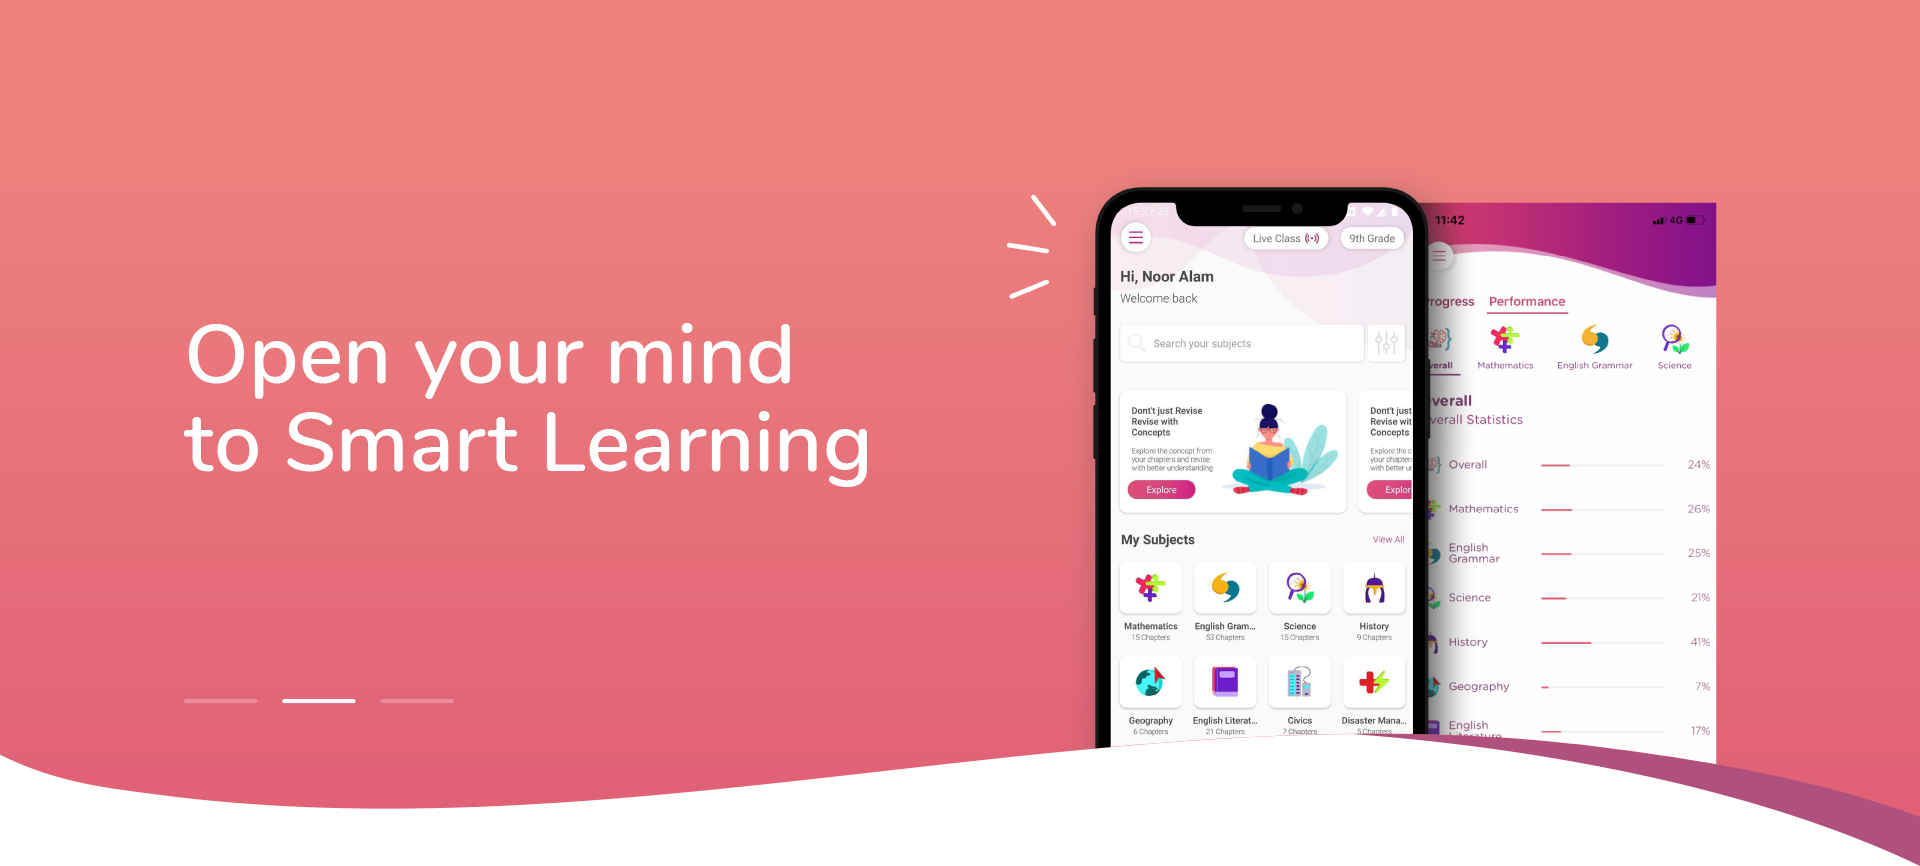 open your mind to smart learning